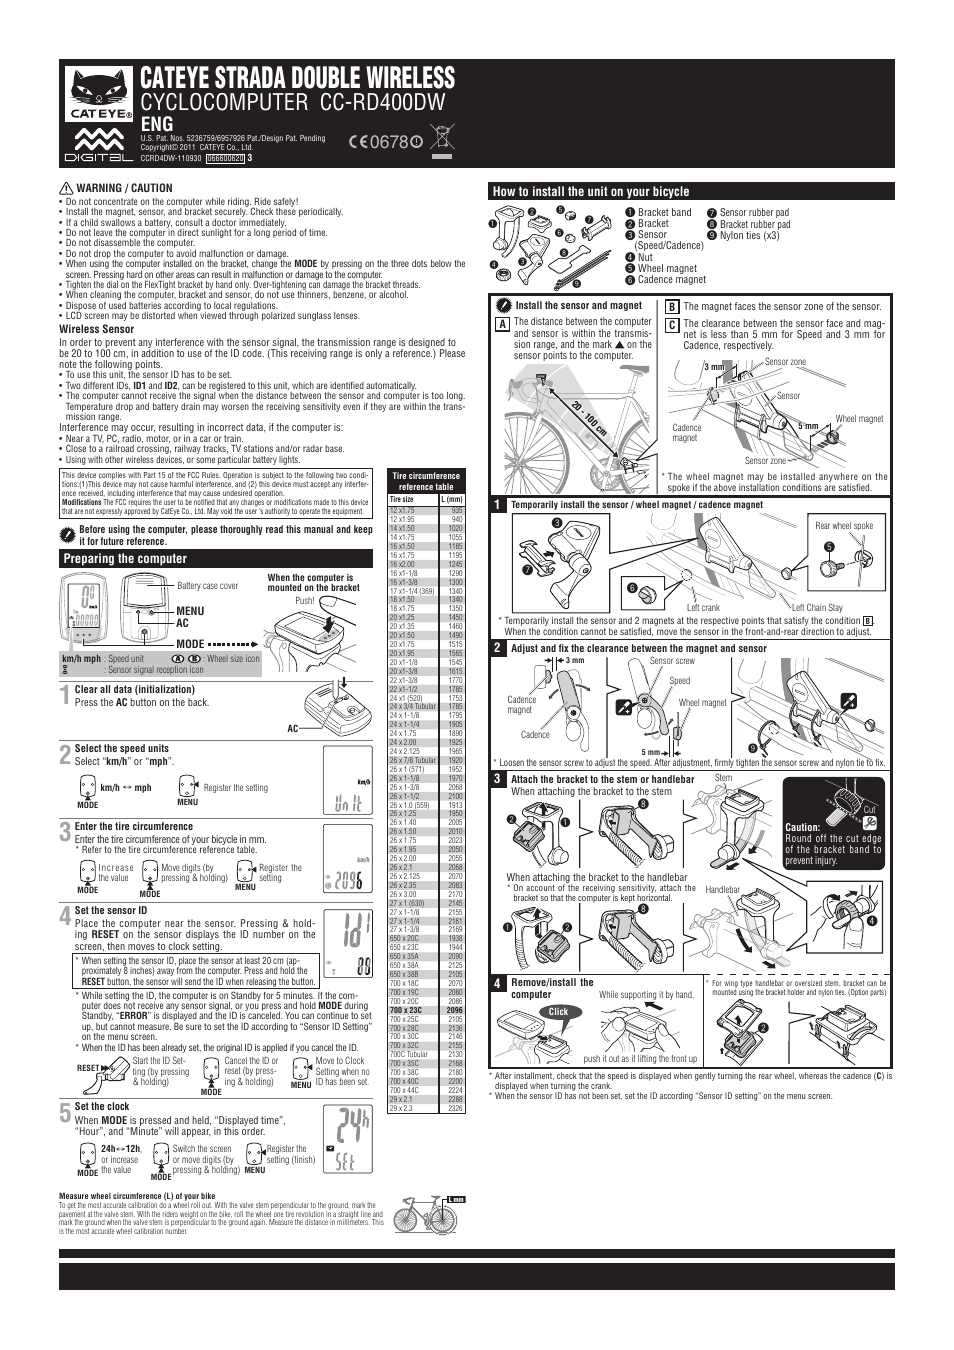 Cateye Cc Rd400dw Strada Double Wireless User Manual 2 Pages